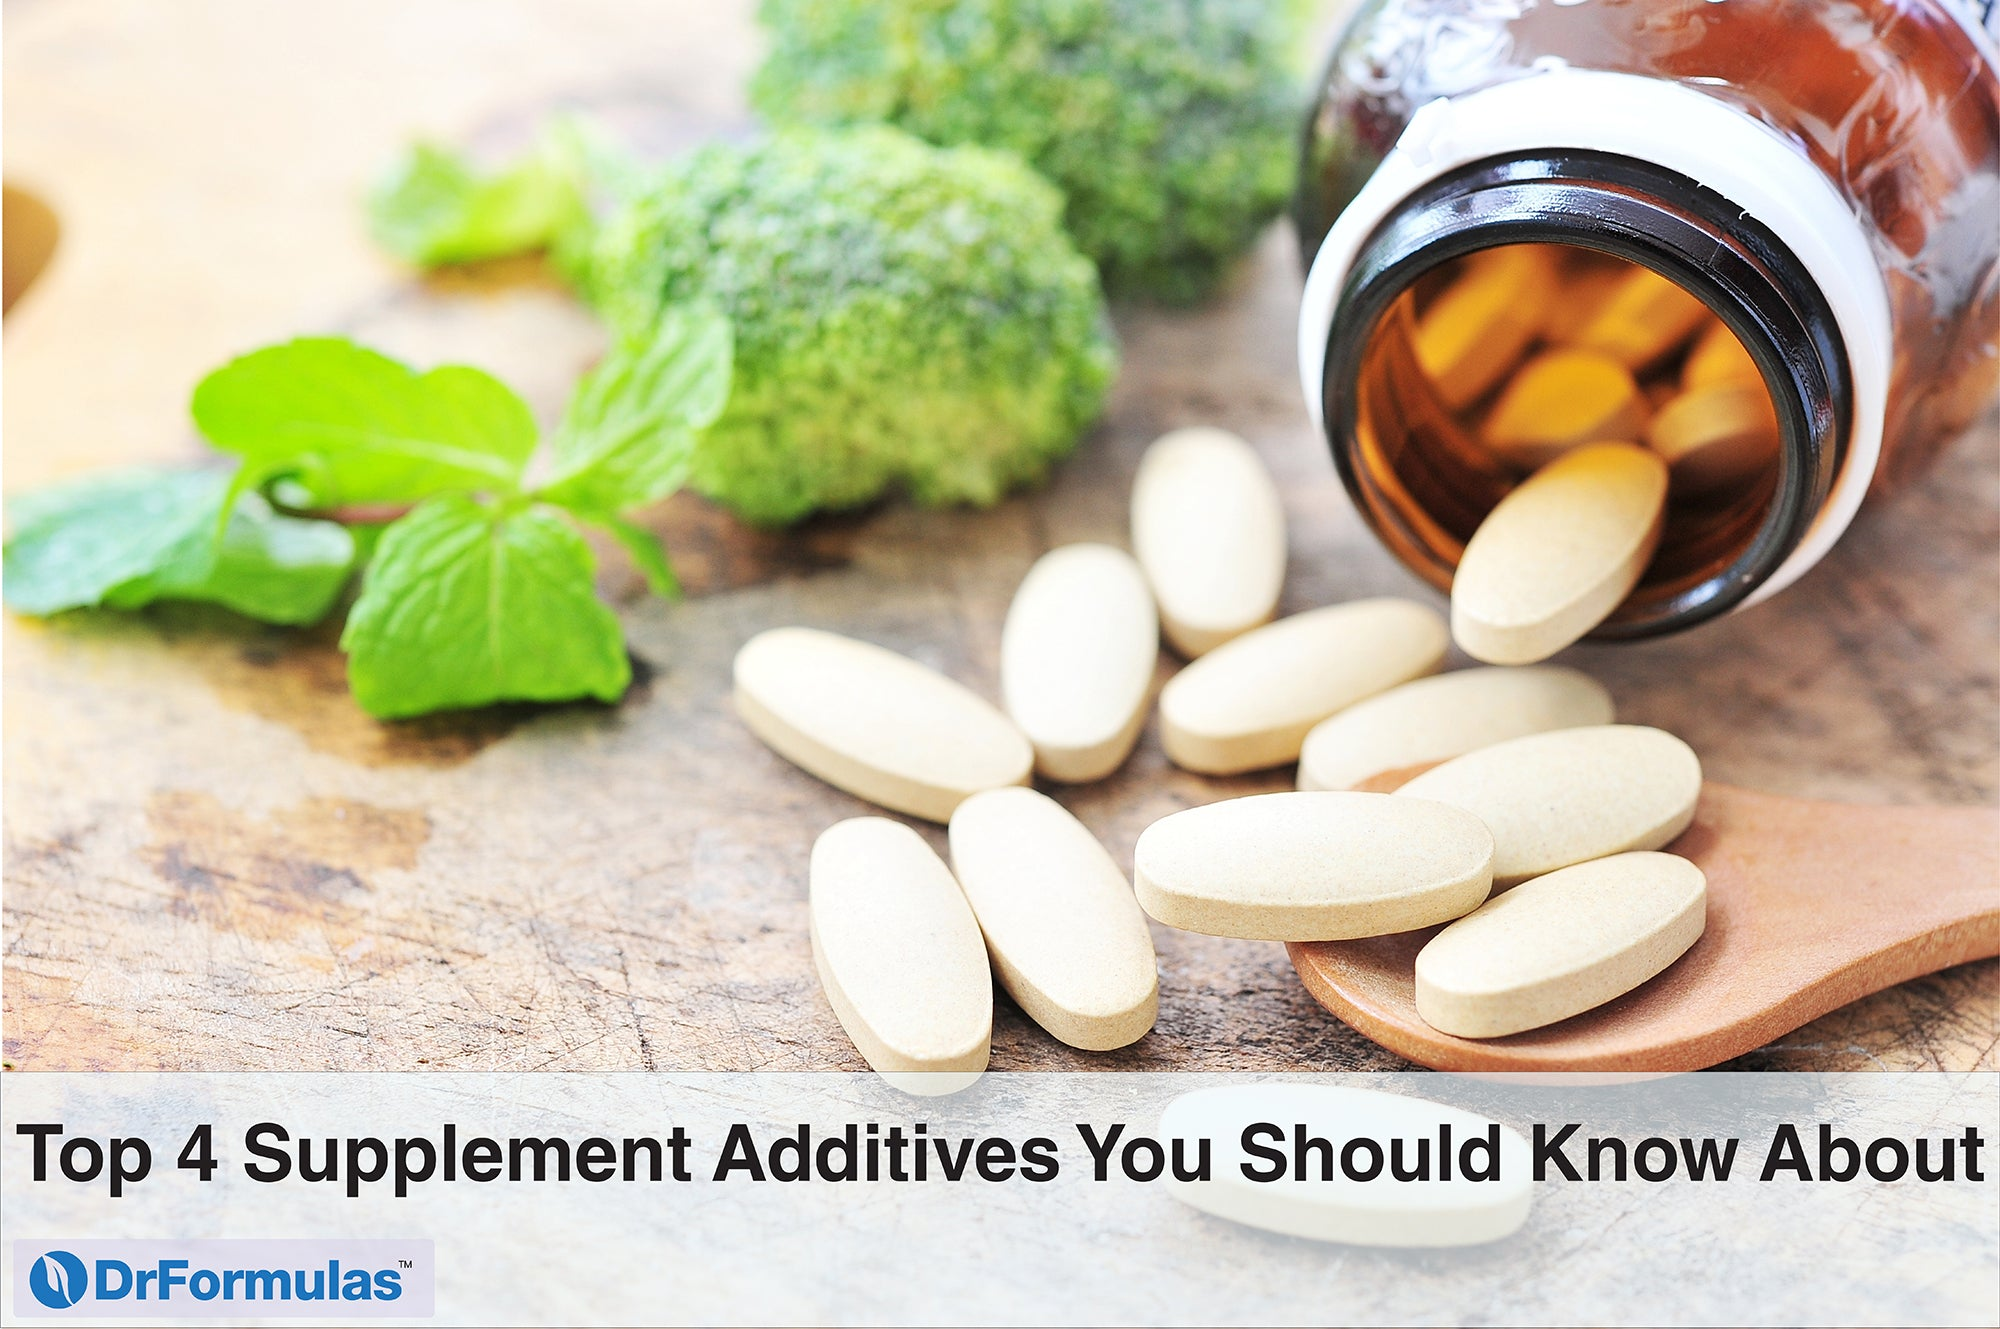 Top 4 Supplement Additives You Should Know About